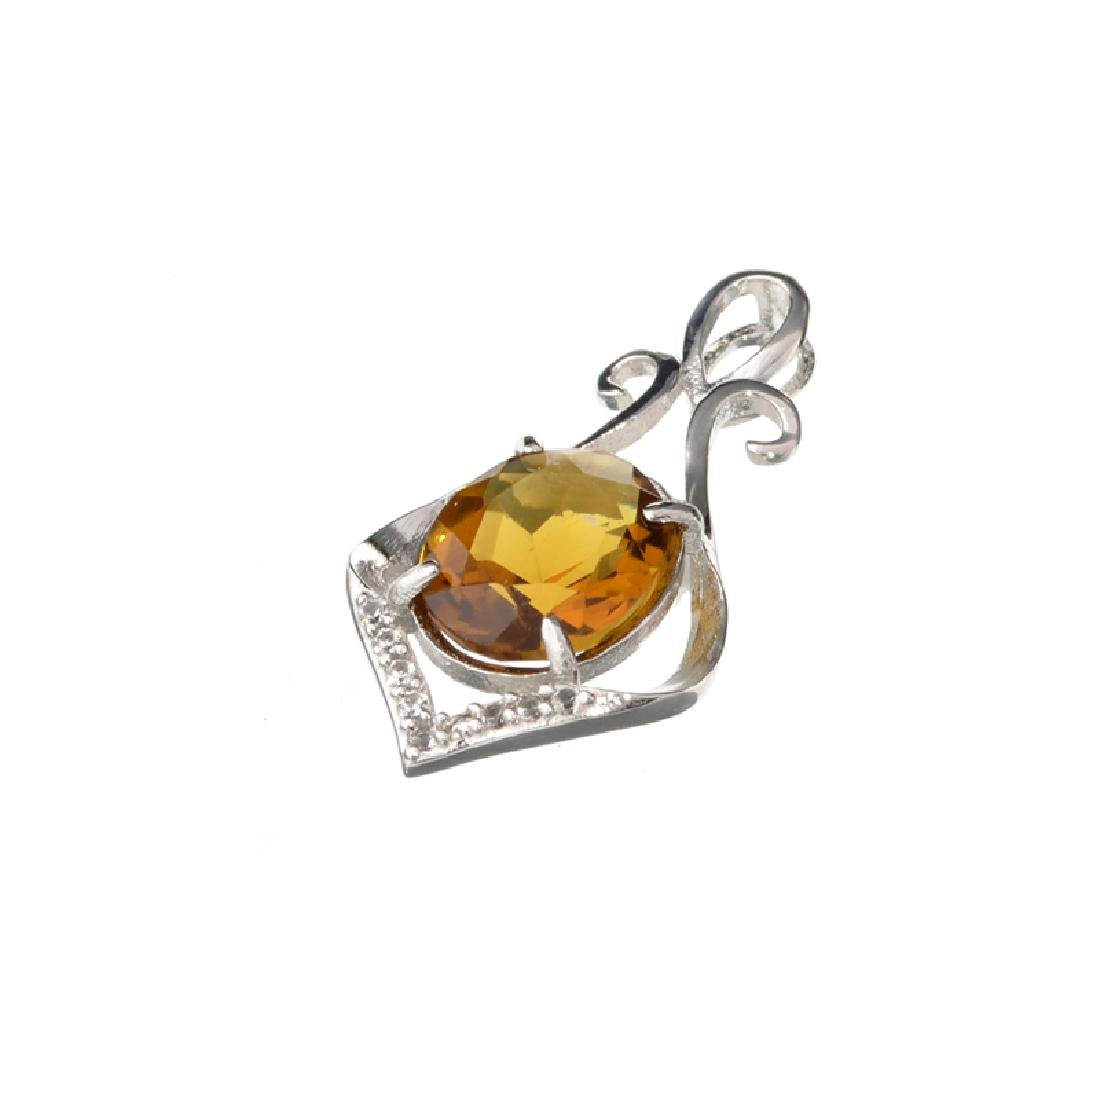 APP: 0.4k Fine Jewelry 3.00CT Oval Cut Citrine And